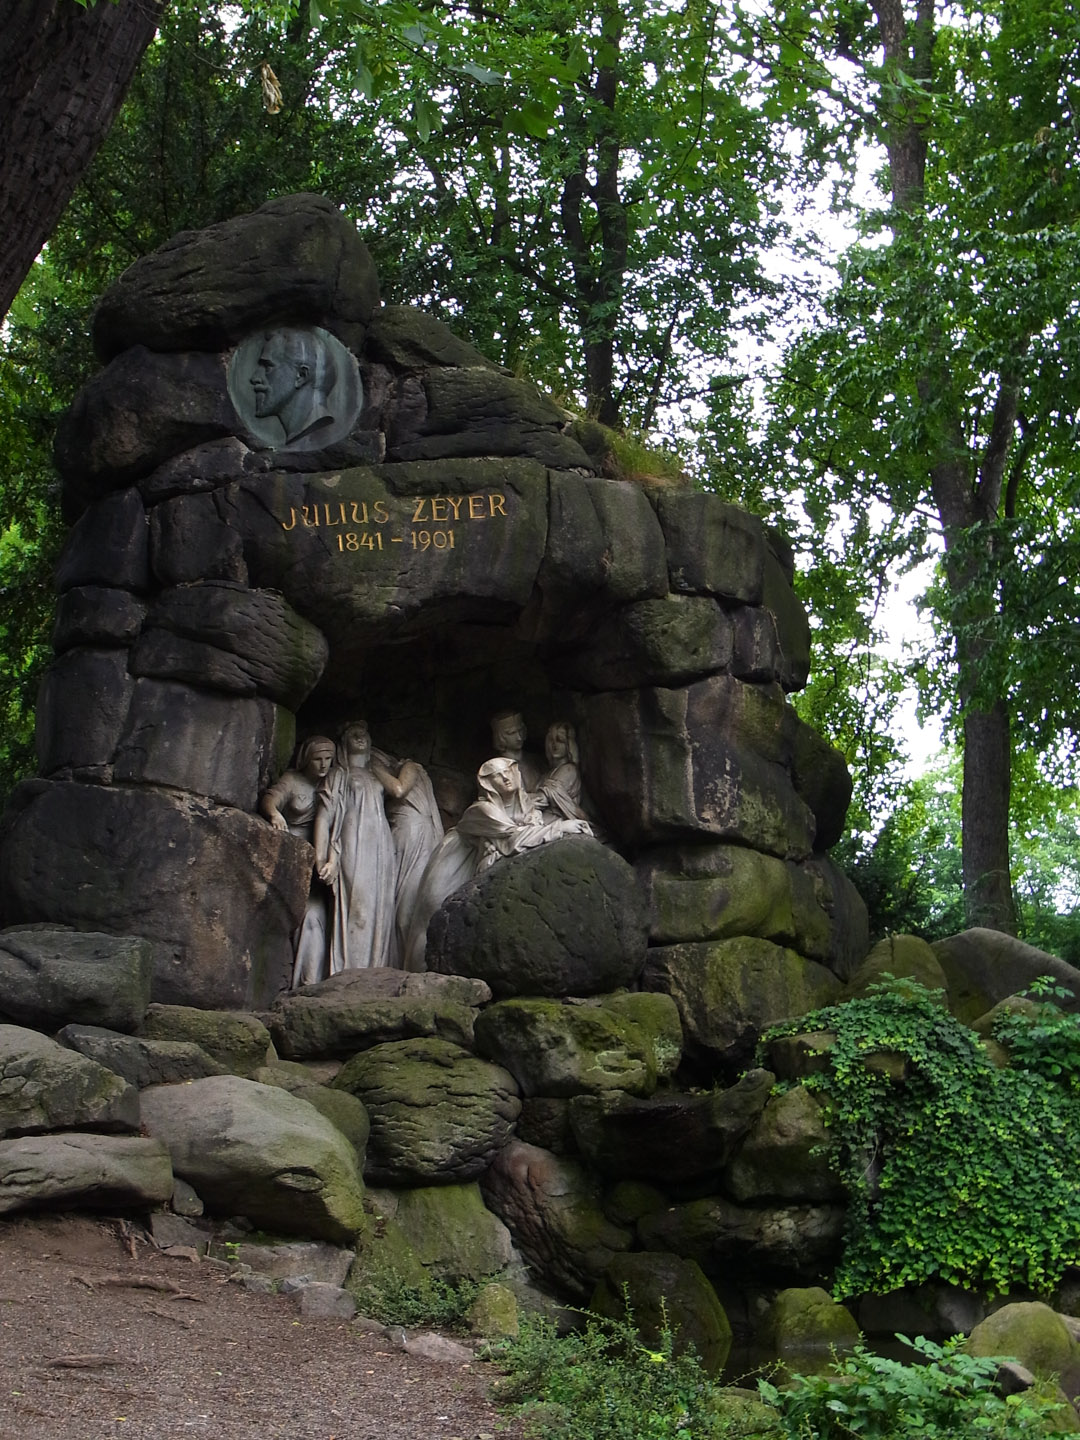 Monument to Julius Zeyer, 1841-1901, Czech writer, playwright and Romantic poet, 1931, by Josef Mauder, in Chotkovy Sady or the Chotek Gardens